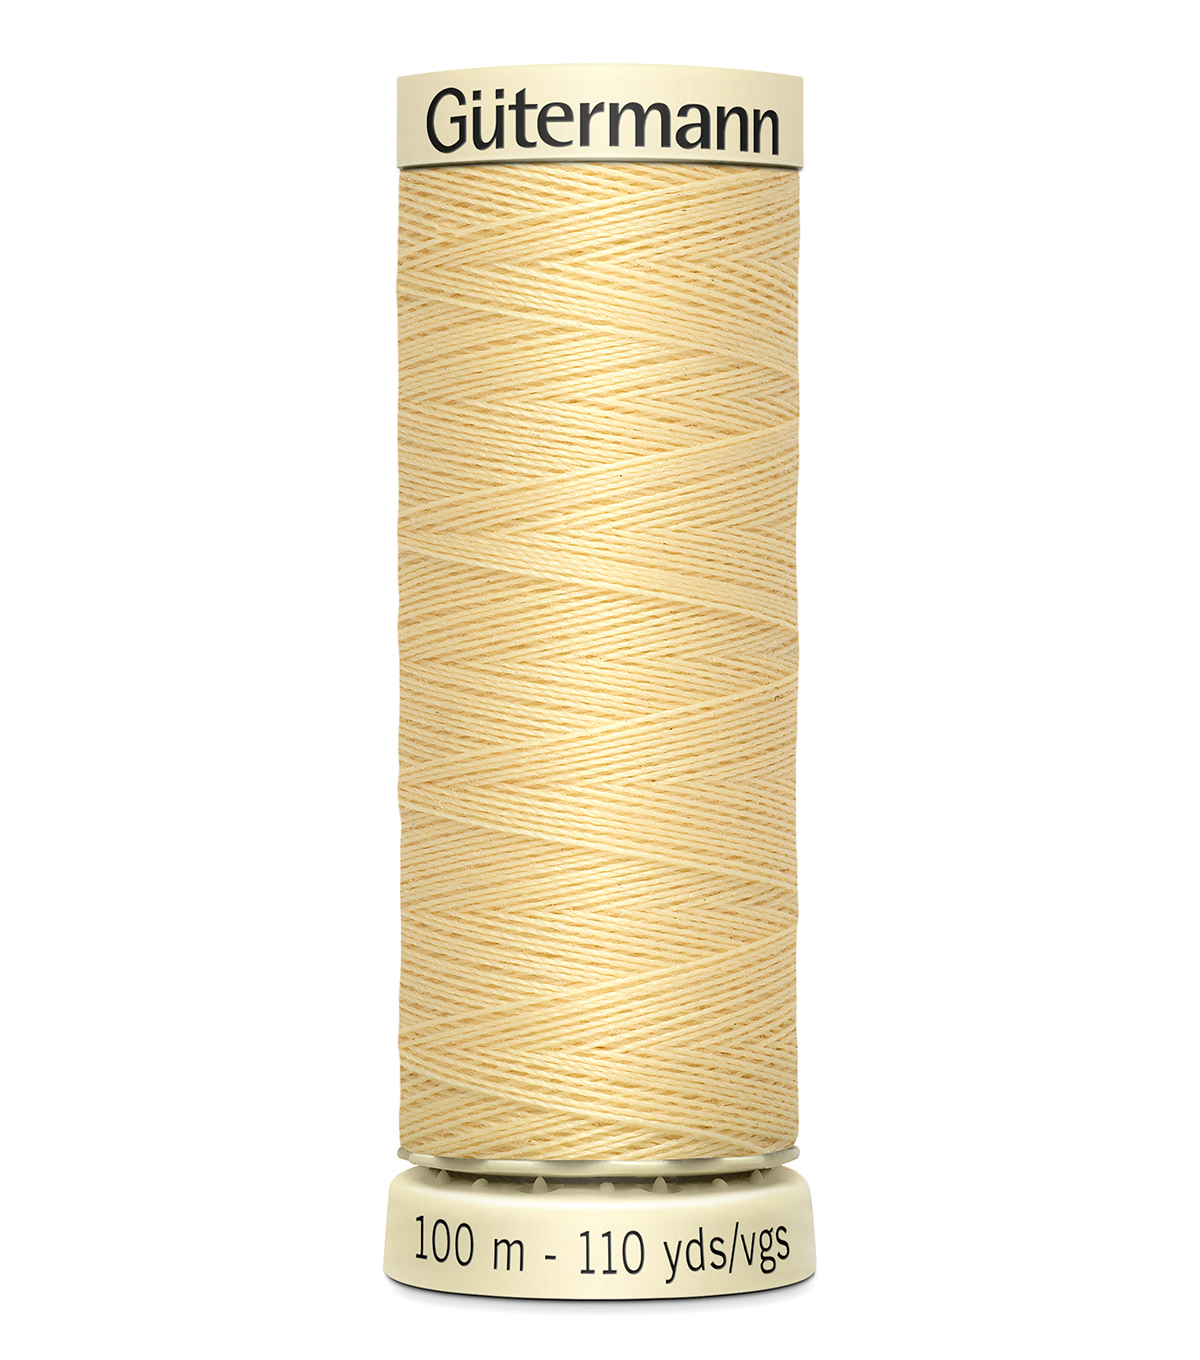 Gutermann Sew All Polyester Thread 110 Yards-Oranges & Yellows , Canary #815